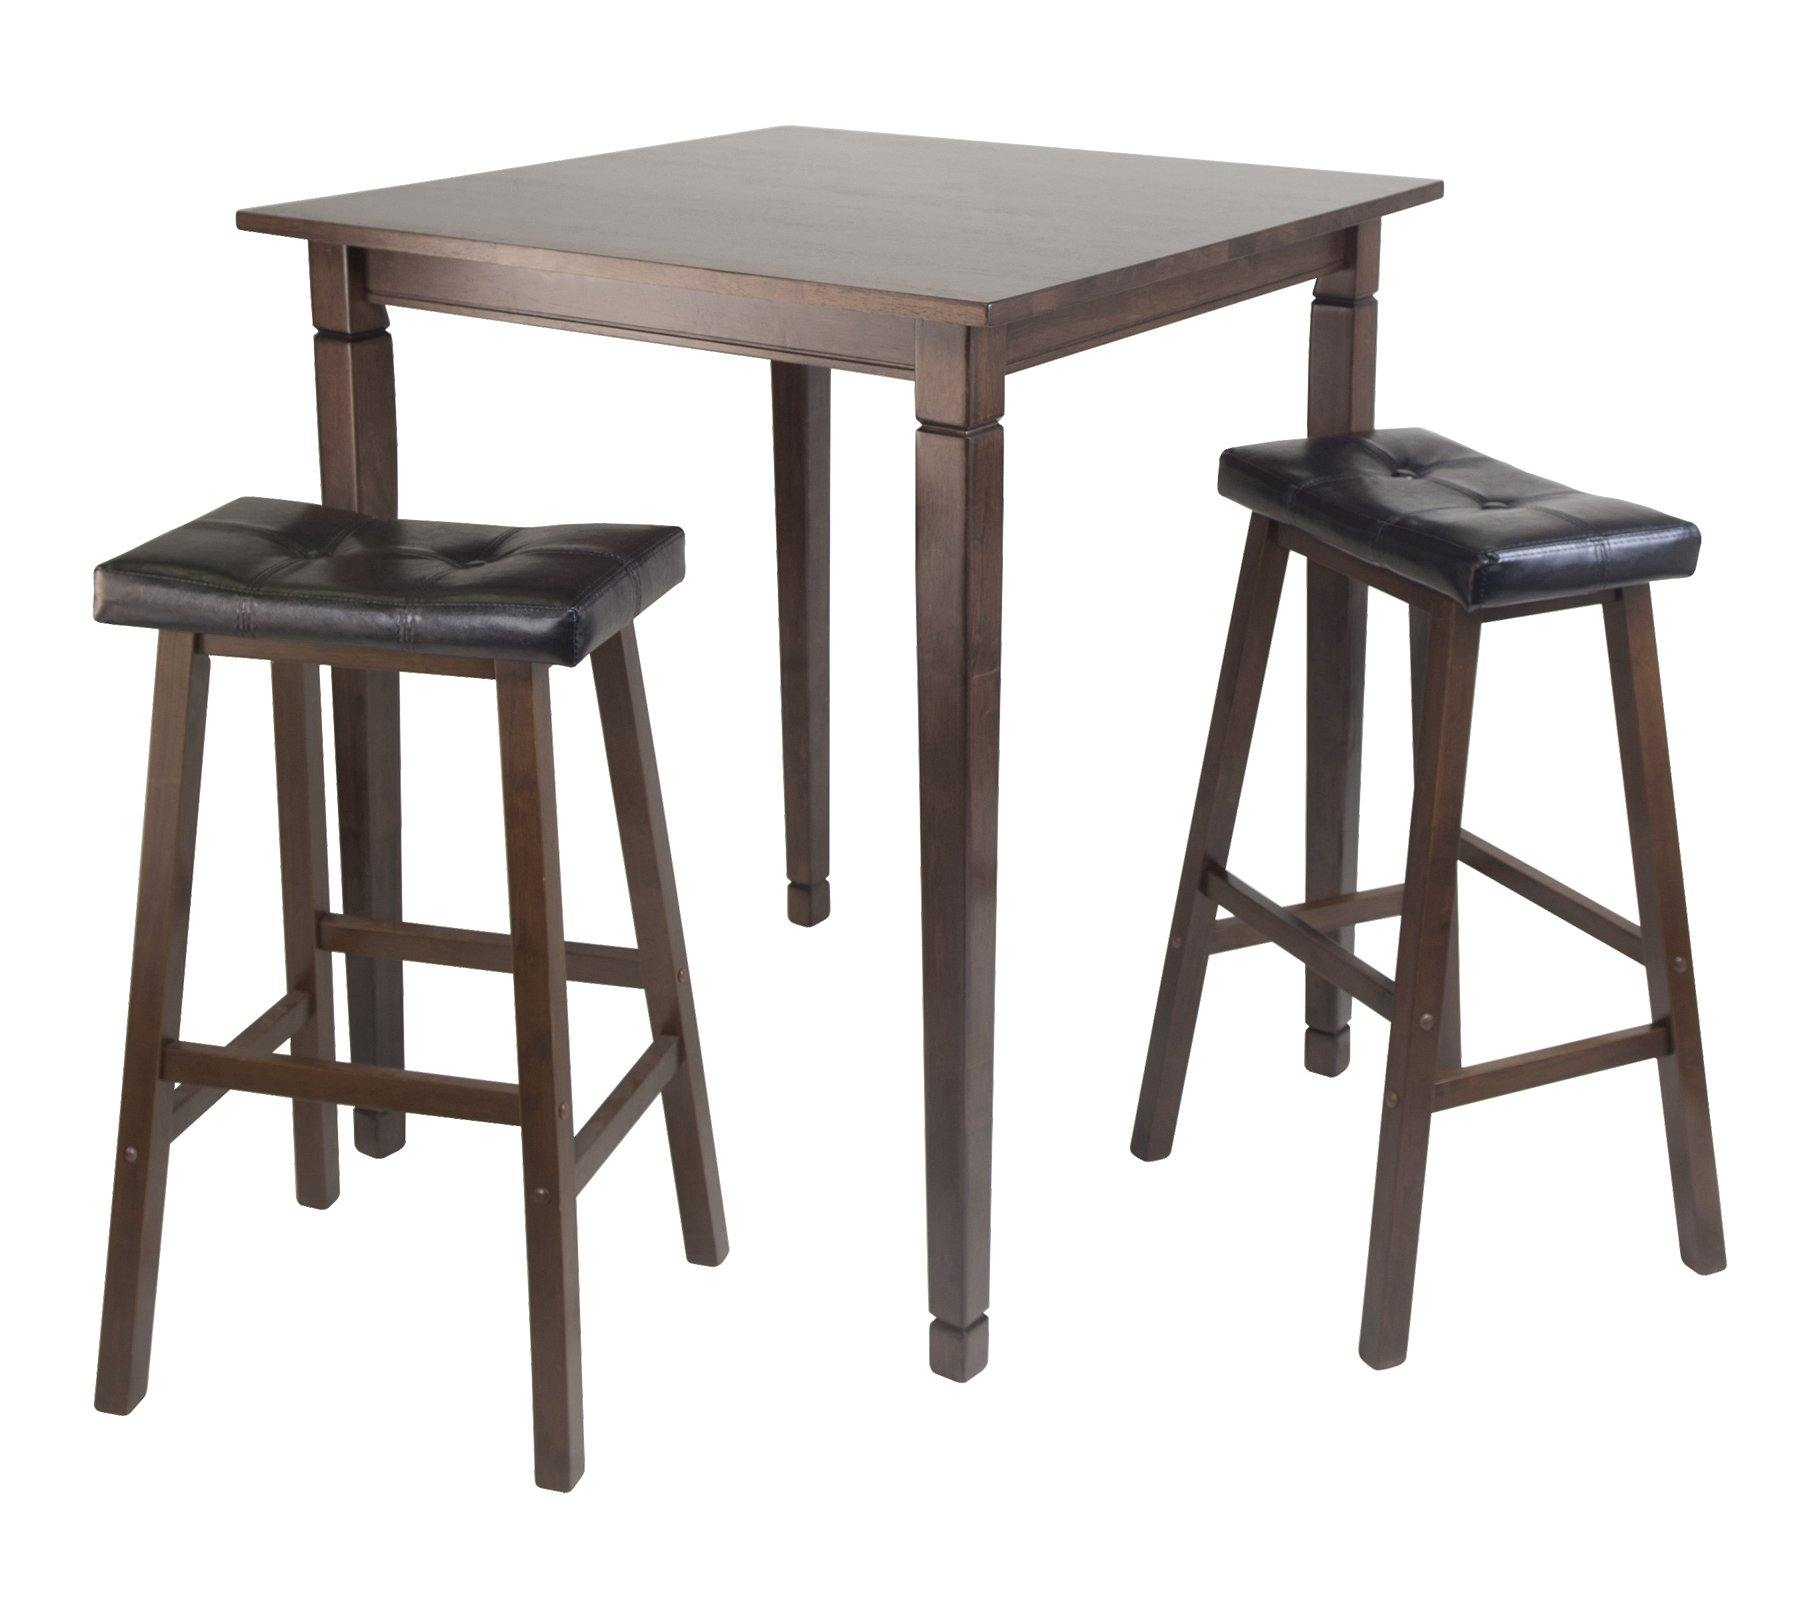 3Pc Kingsgate High/Pub Dining Table with Cushioned Saddle Stool - My USA Furniture